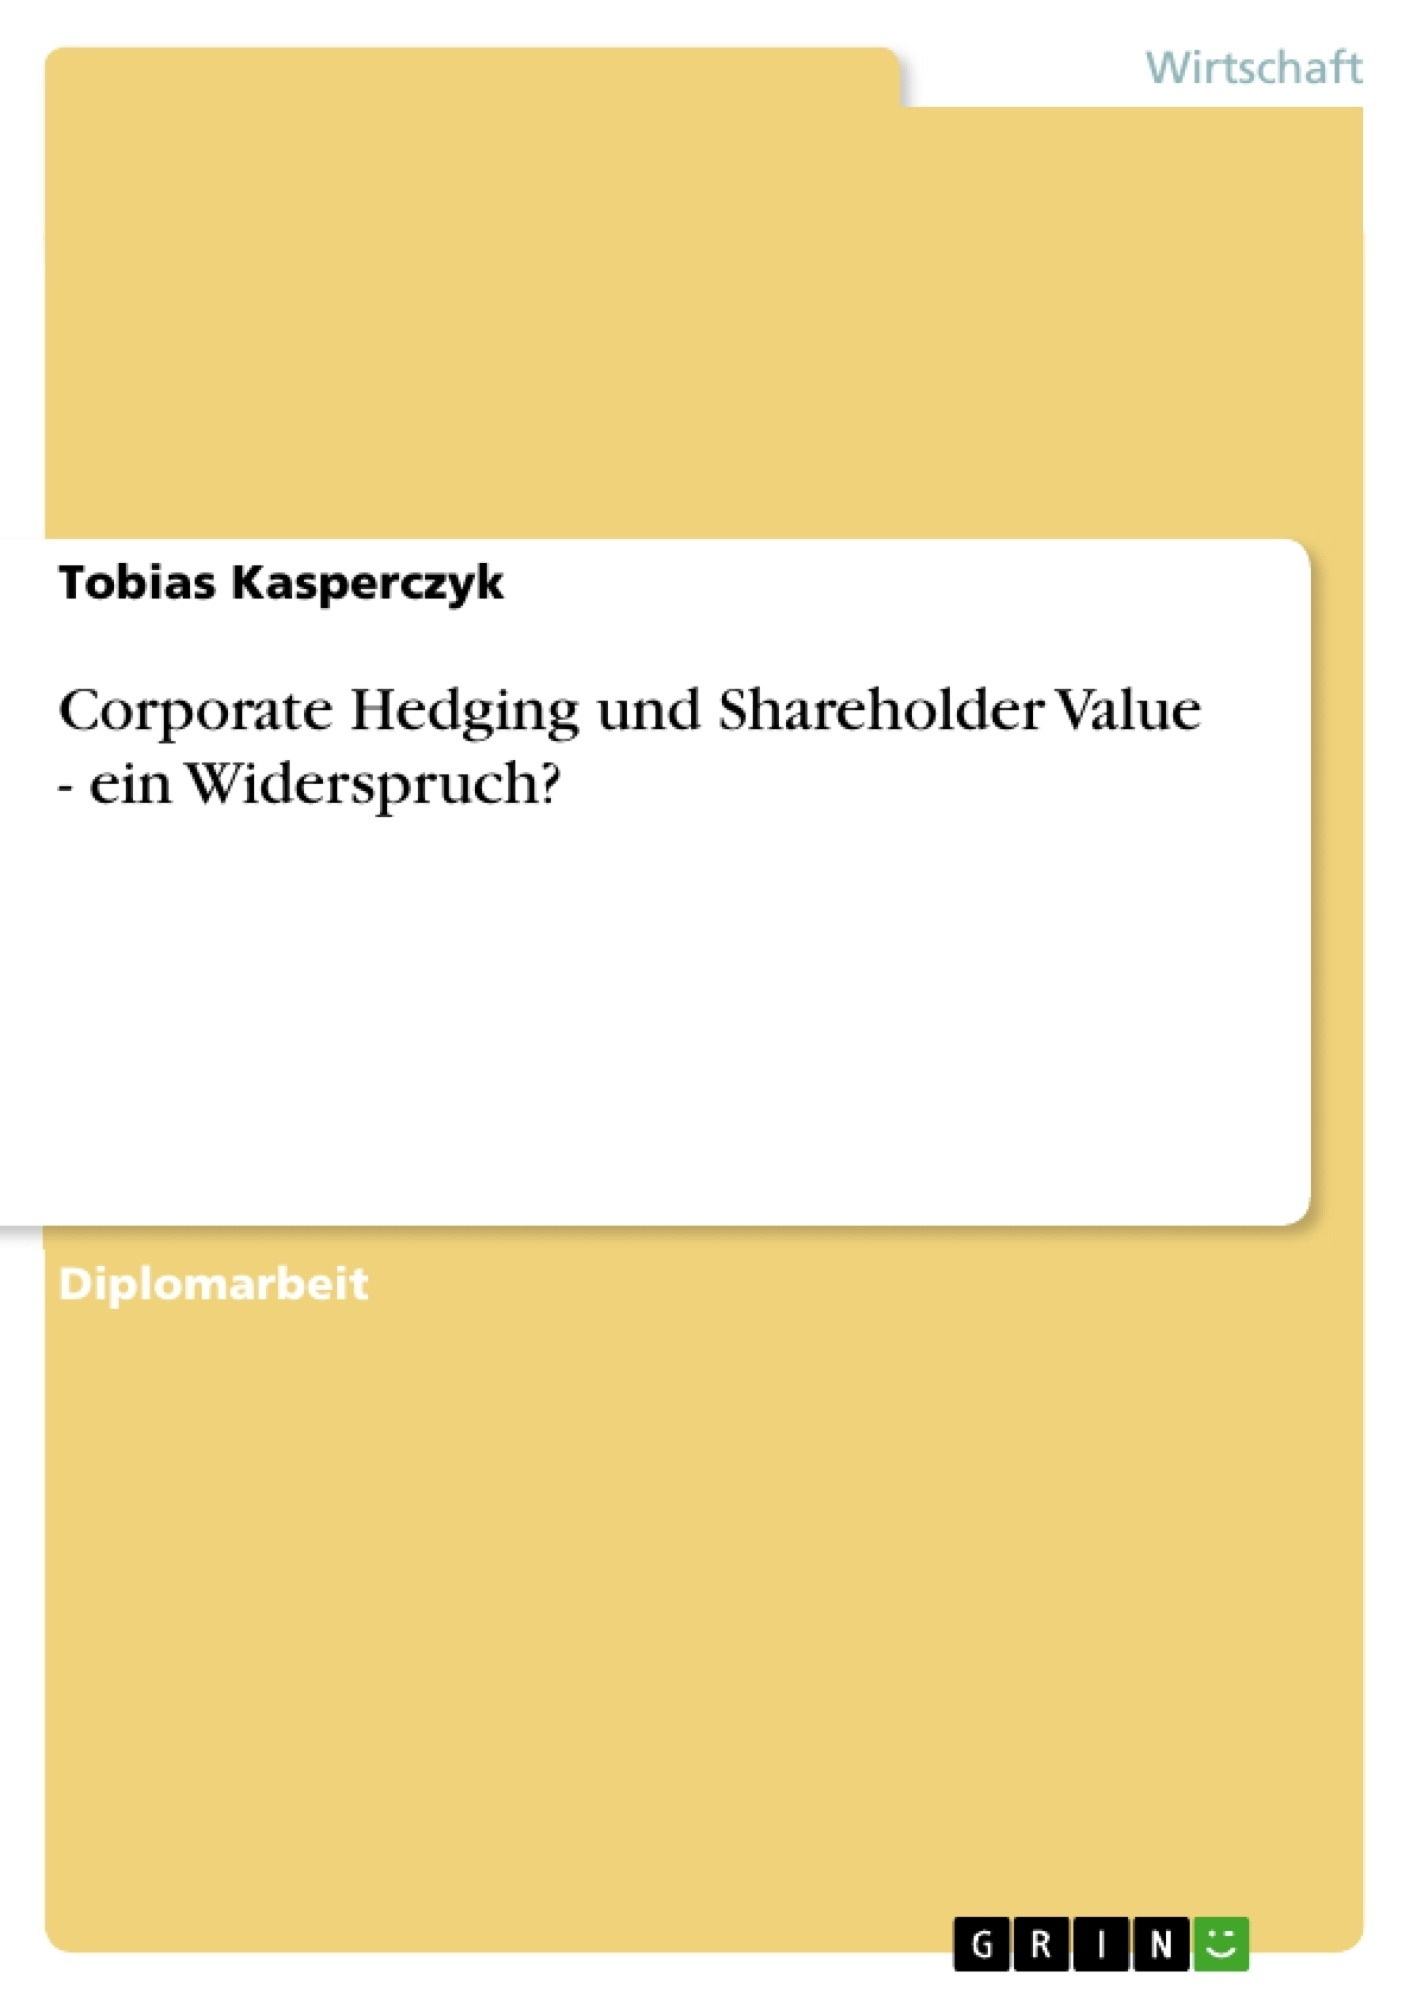 Titel: Corporate Hedging und Shareholder Value - ein Widerspruch?